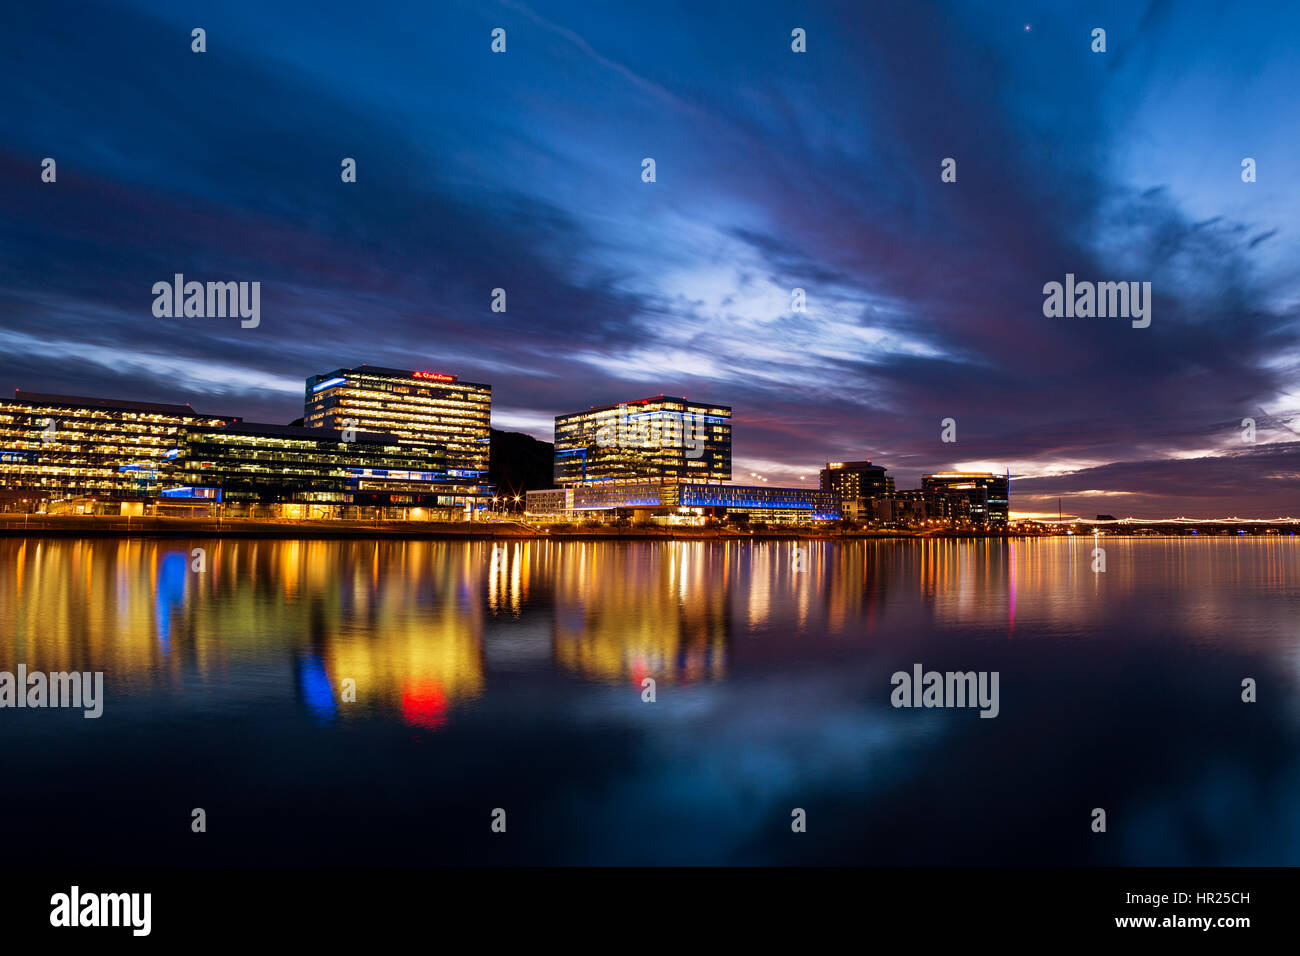 Tempe Town Lake and Downtown Tempe, Arizona city skyline at sunset - Stock Image